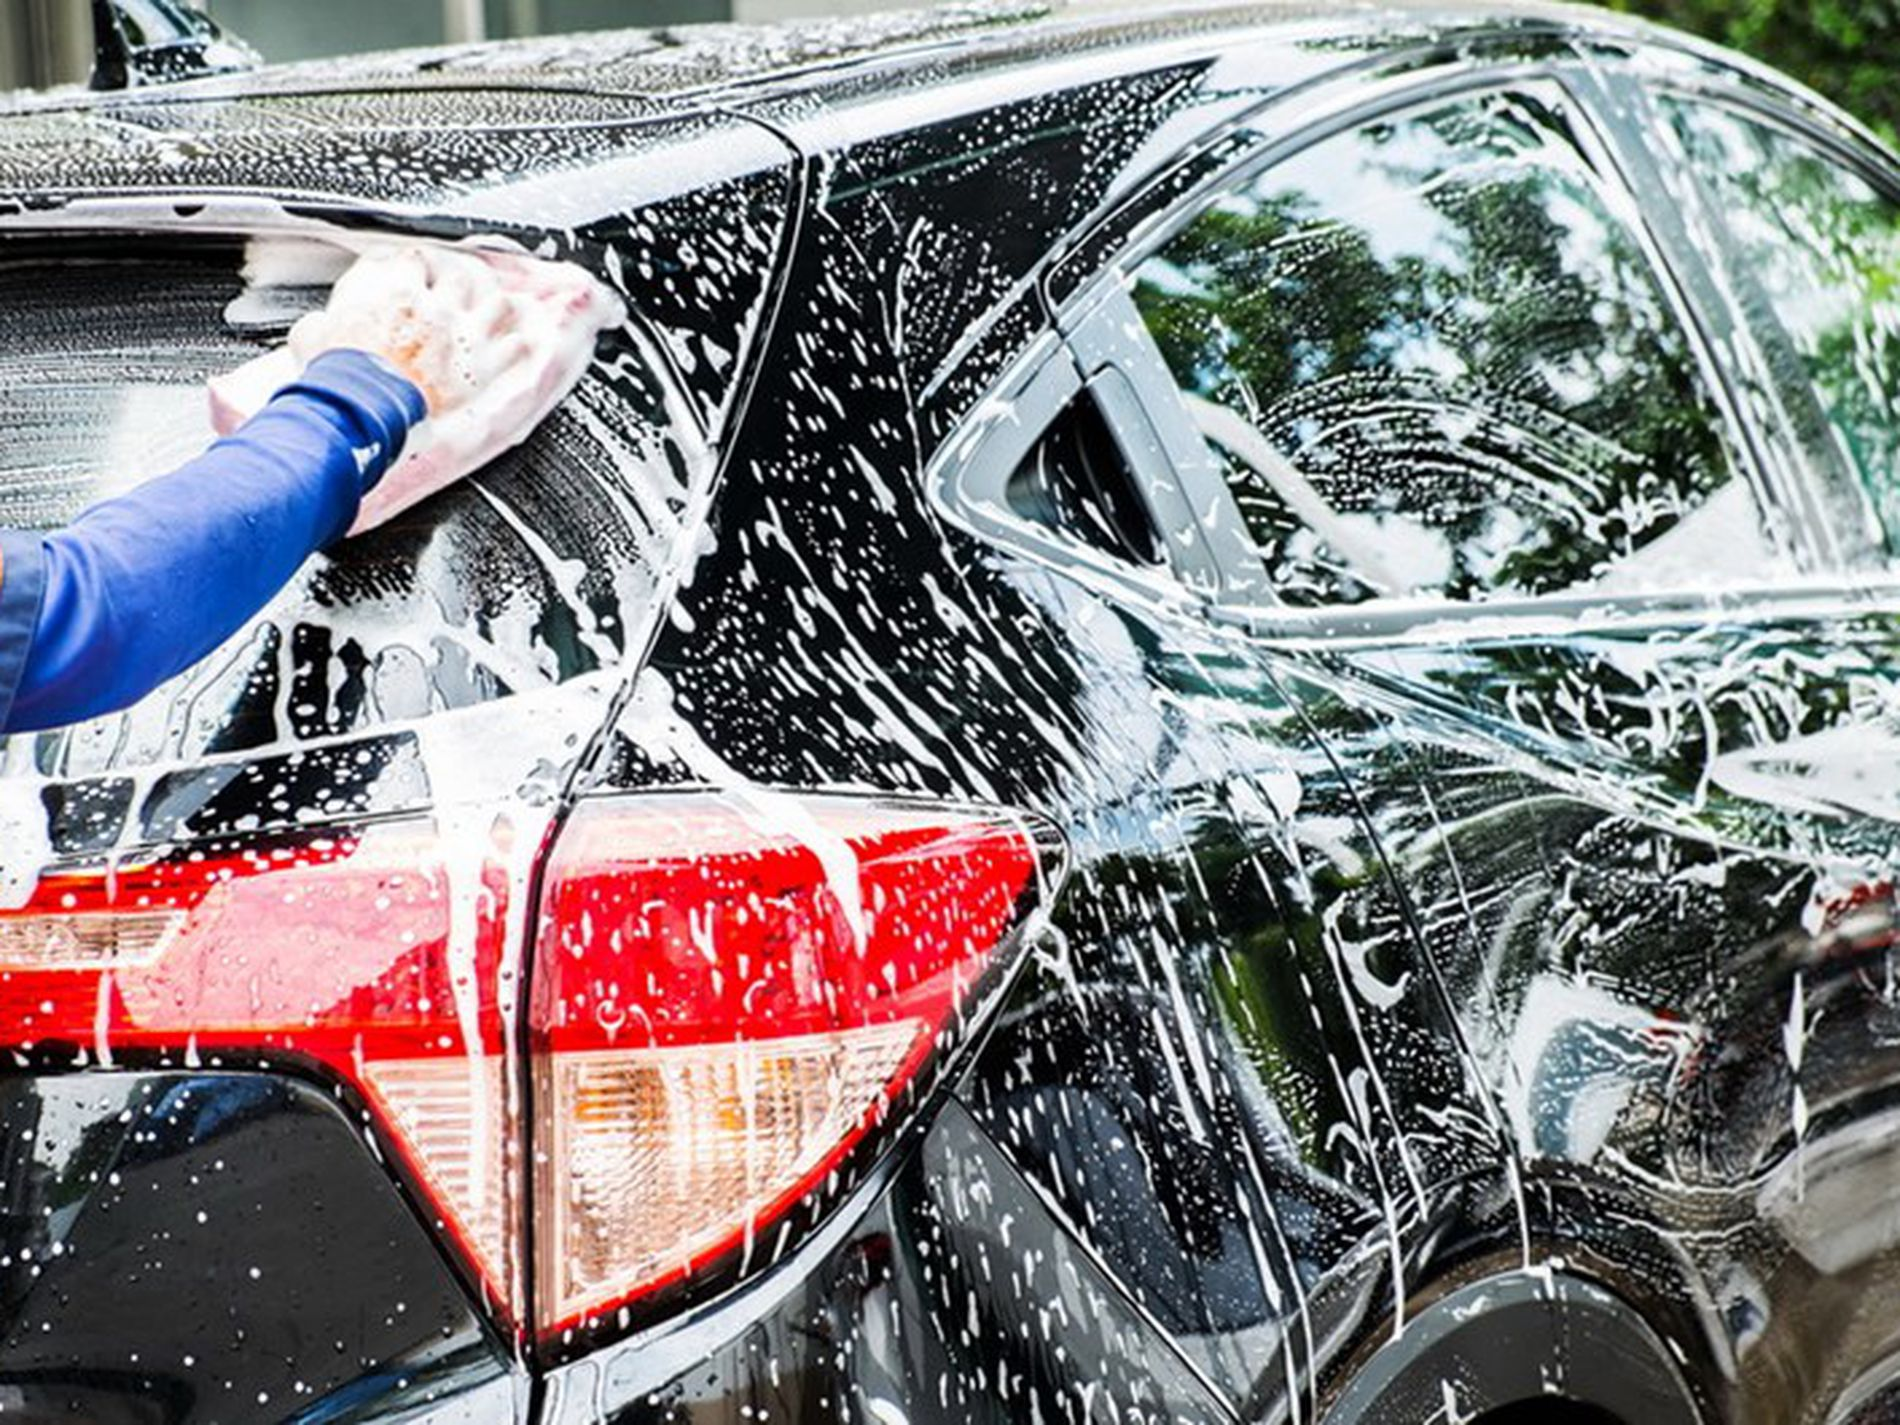 Hand Car Wash Business for Sale, run by staff